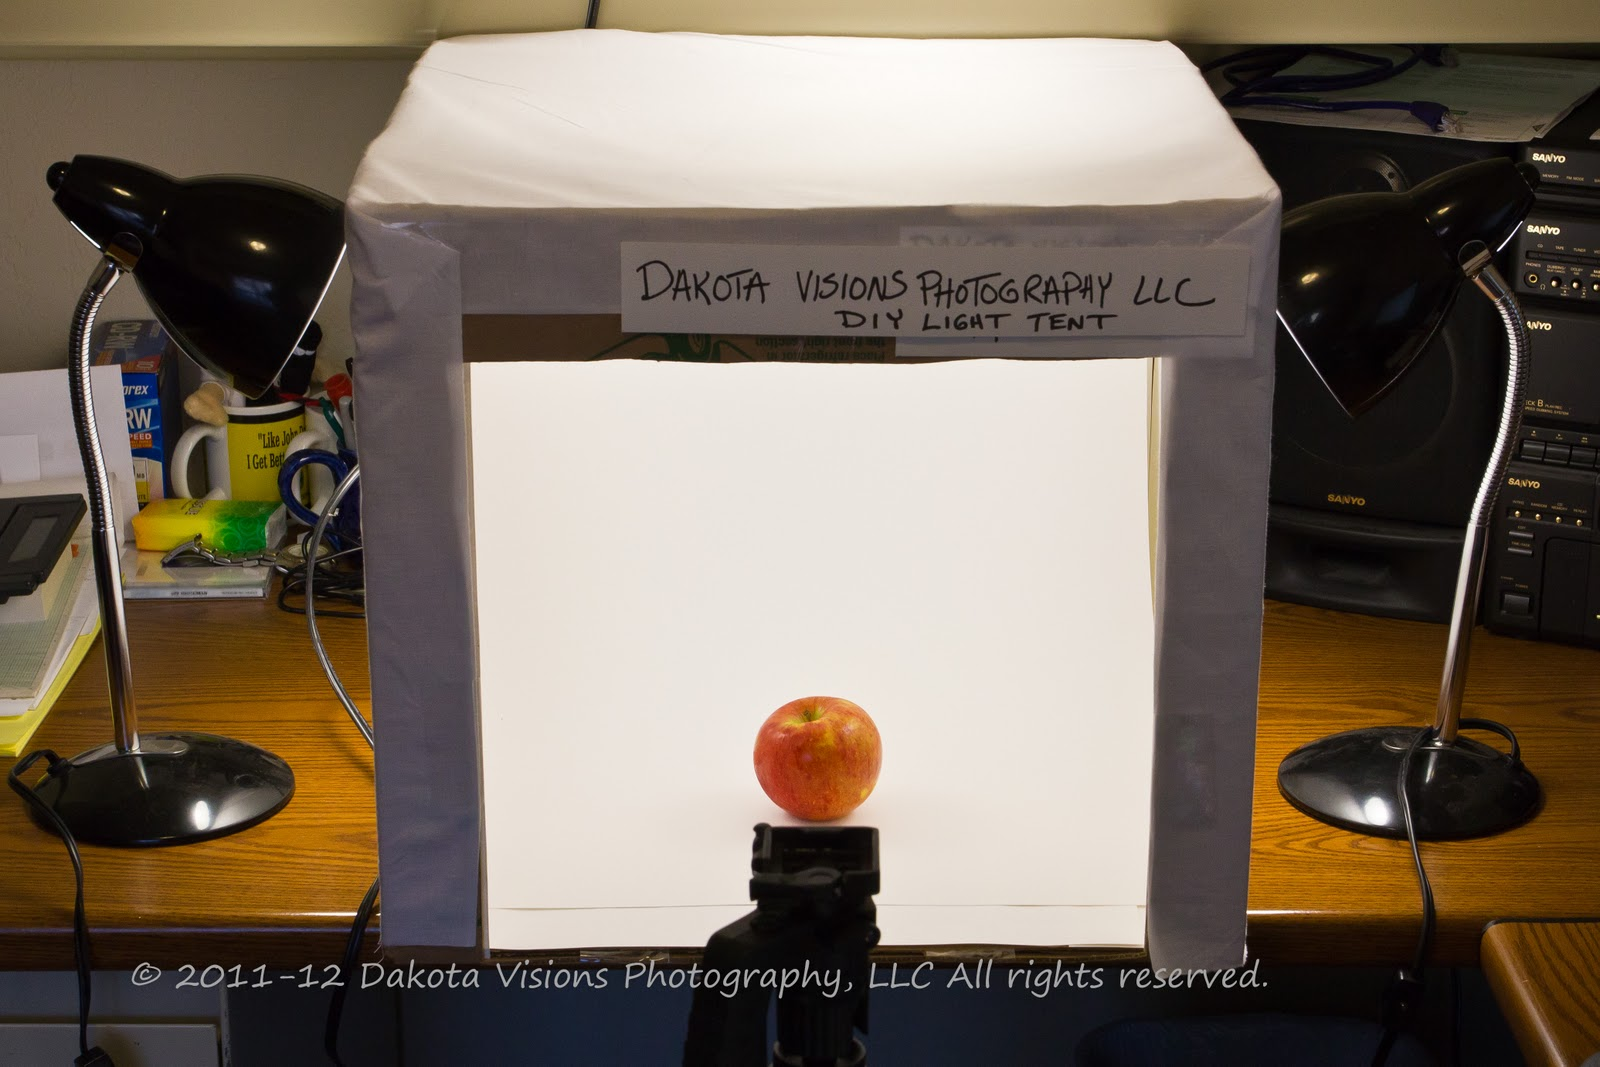 DIY Light Tent Is It Worth It by Dakota Visions Photography LLC Photography DIY Projects & See You Behind the Lens... : DIY LIGHT TENT: IS IT WORTH IT?